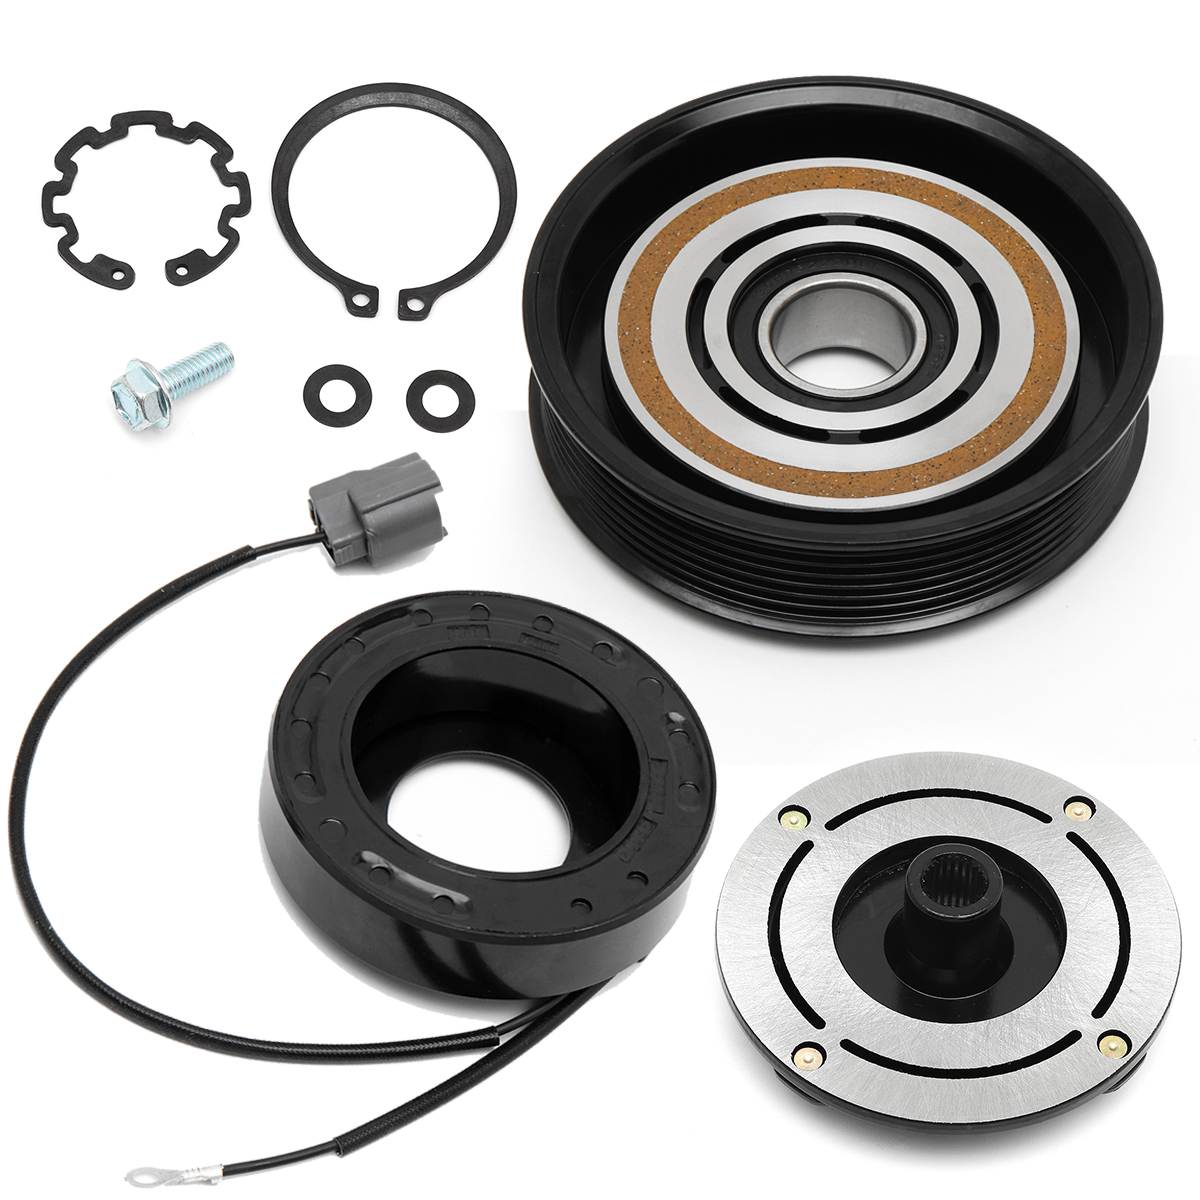 New AC A/C Compressor Clutch Kit For Acura MDX TL Pulley